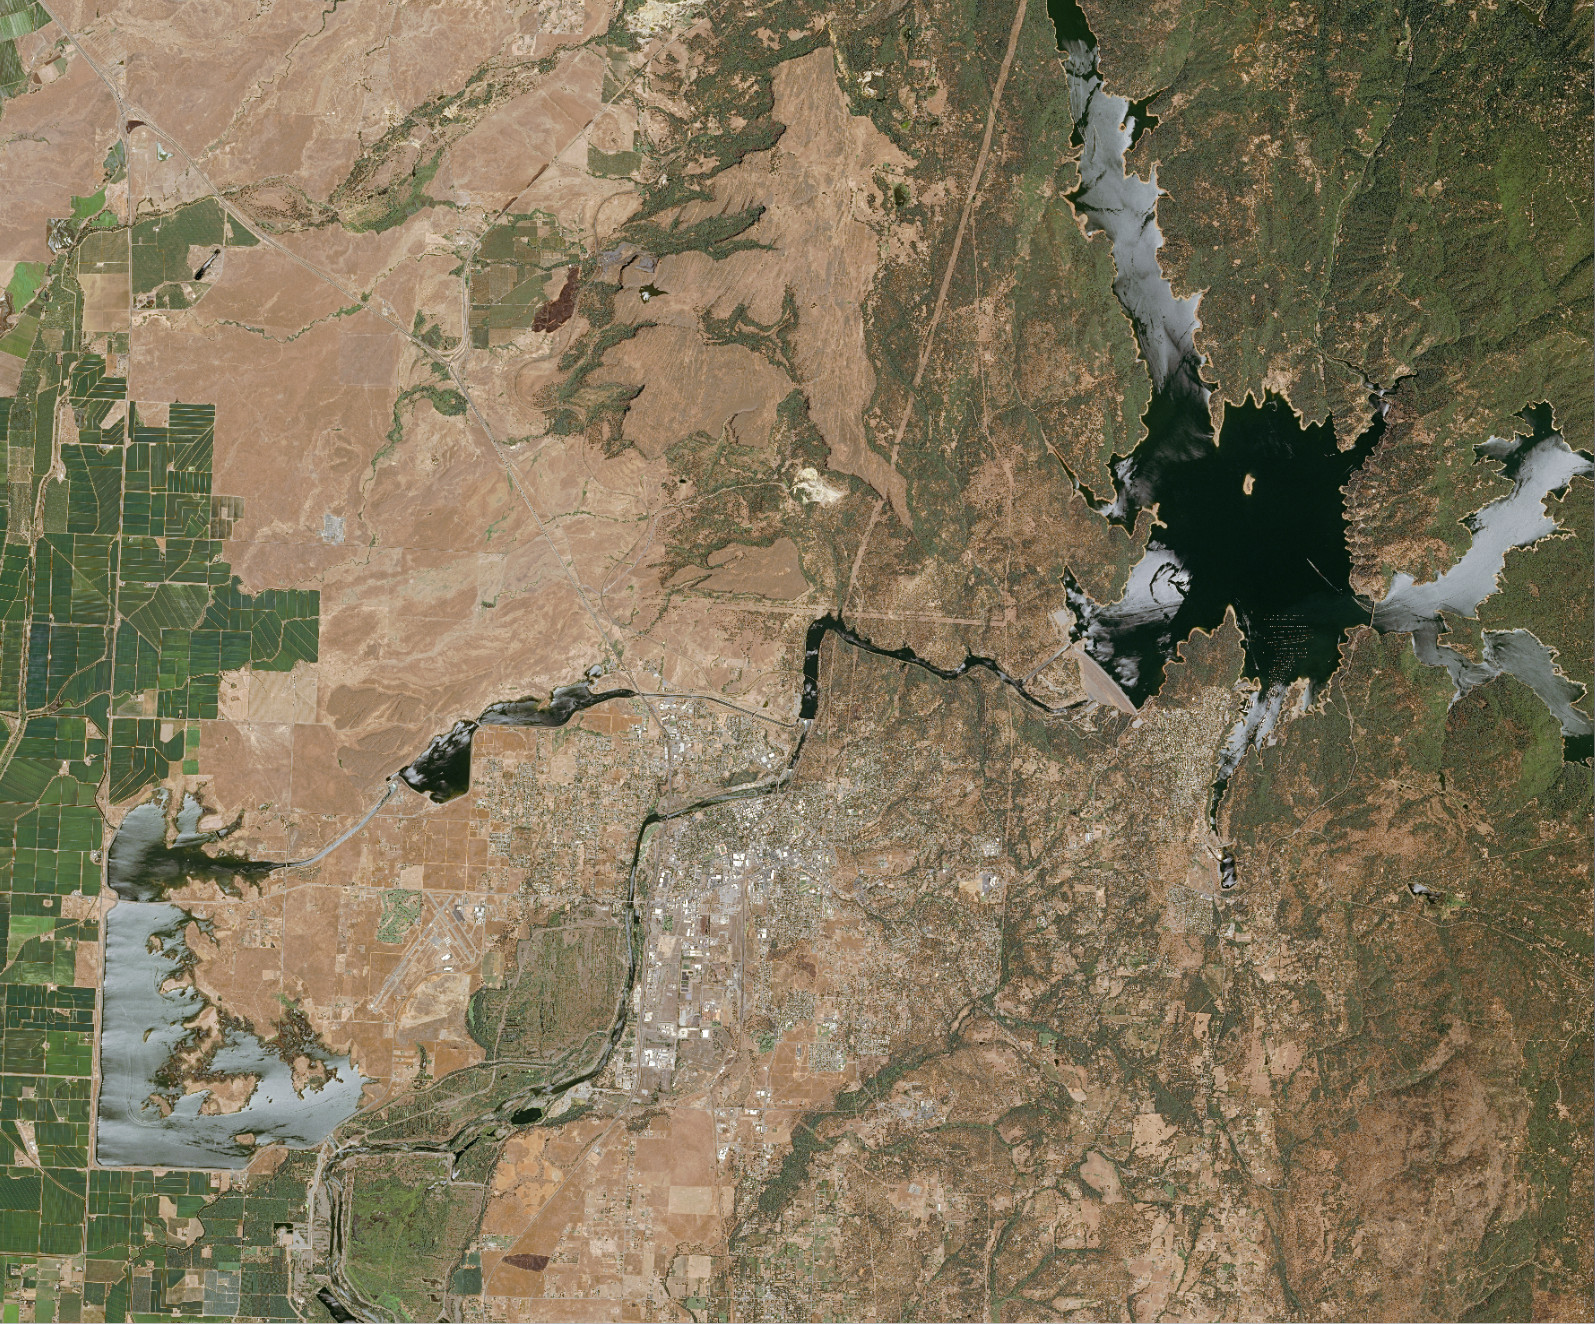 Lake Oroville water elevation as seen from space by Airbus SPOT satellite on June 27, 2016. (Photo: Airbus)